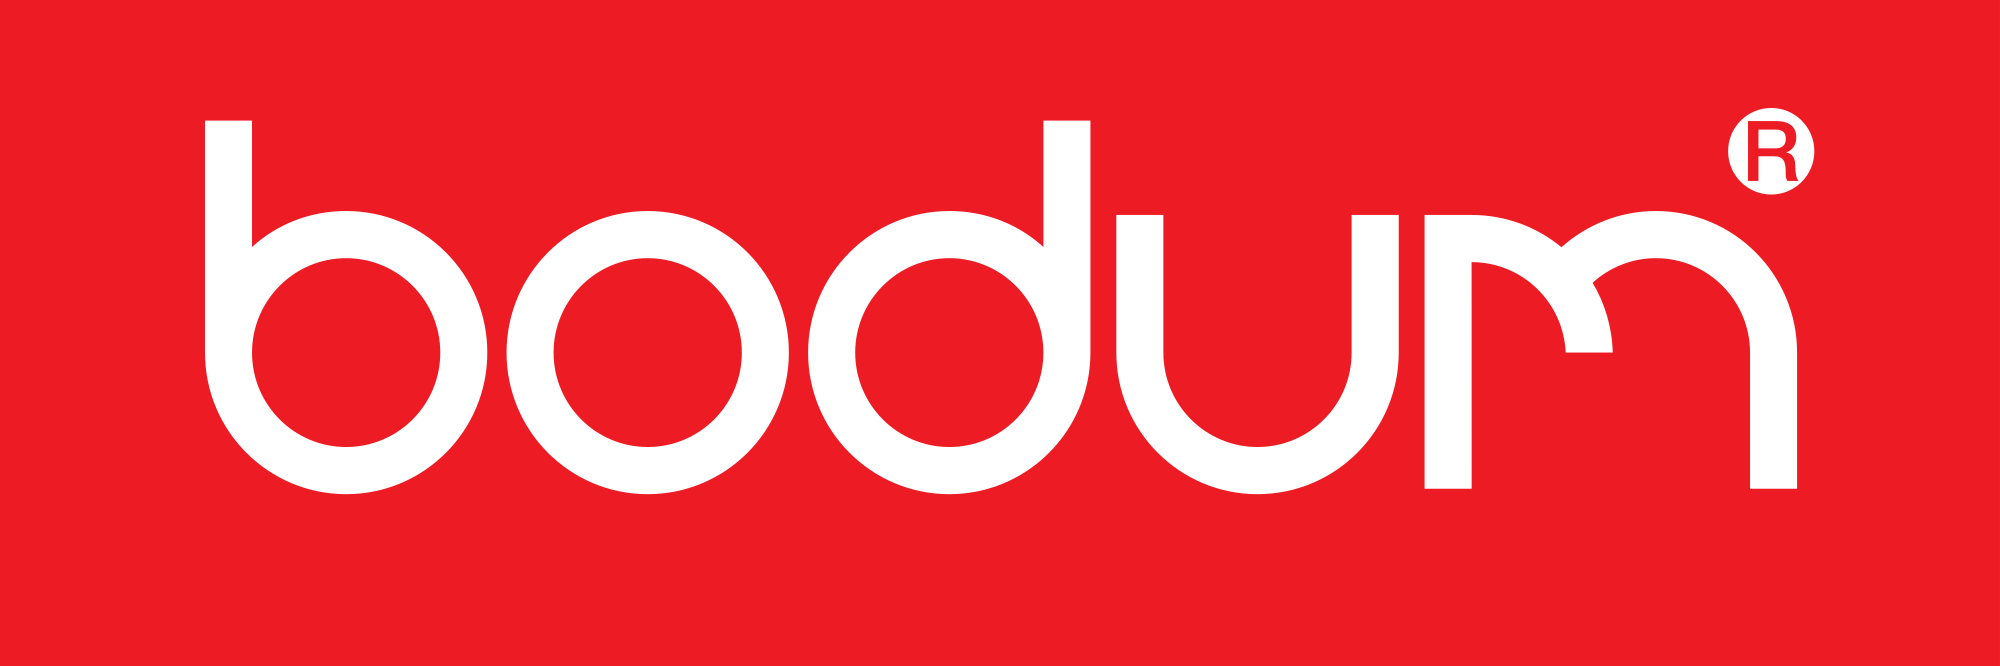 Bodum  coupons and Bodum promo codes are at RebateCodes